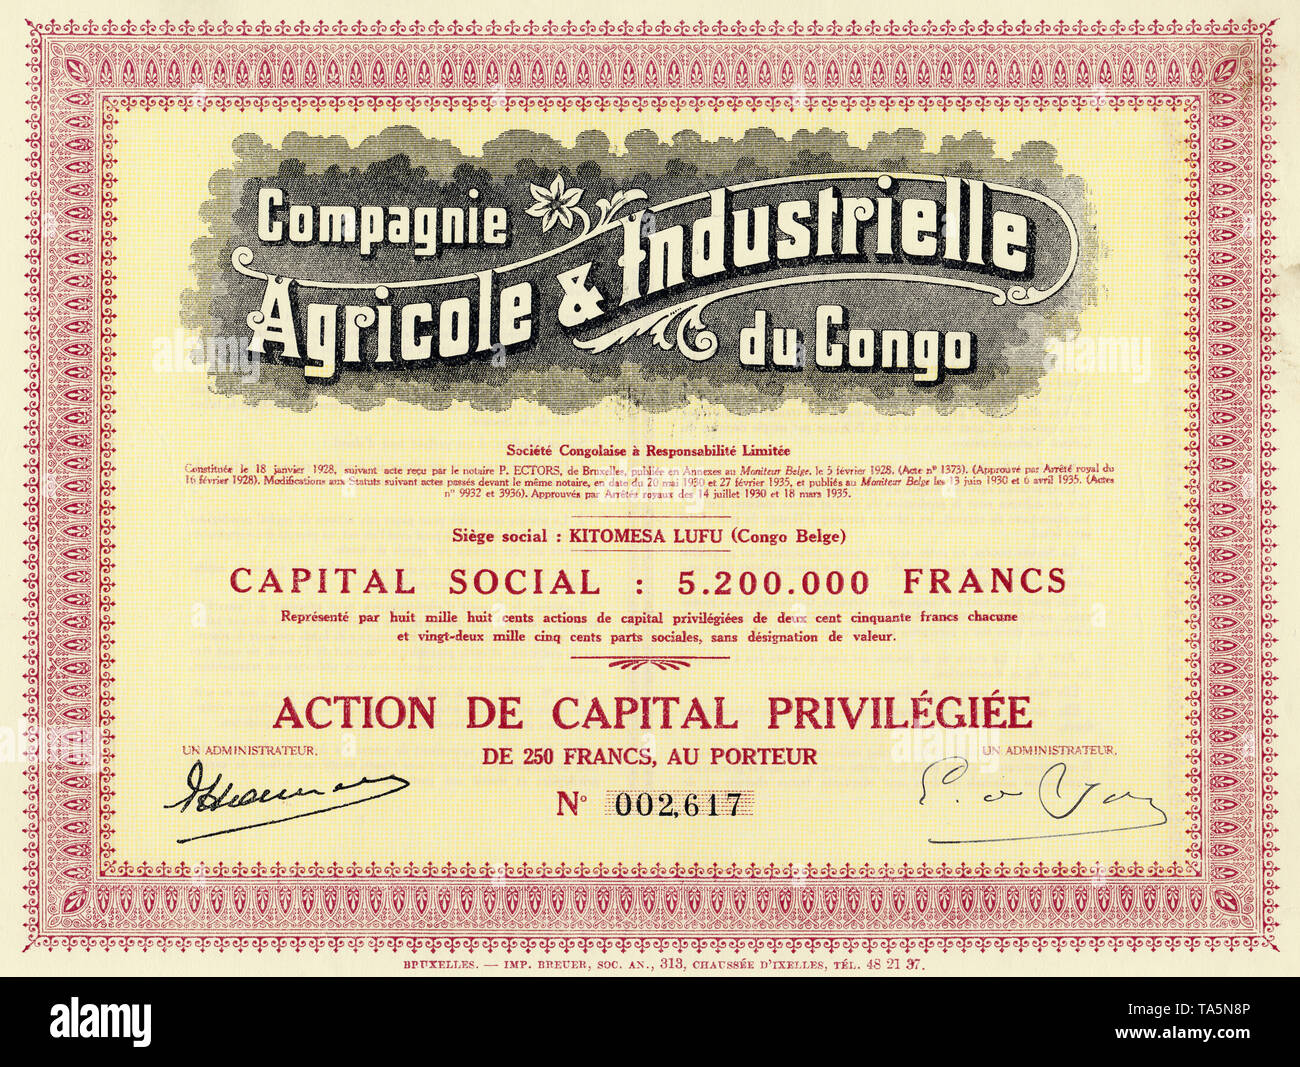 Historic colonial share certificate, agriculture and industry, 1935, Brussels, 250 Belgian francs, Belgium, Europe, Compagnie Industrielle and Agricole du Congo, Kitomesa Lufu, Belgian Congo, now Republic of Congo, Africa, Historisches Wertpapier, Kolonial-Aktie, Agrikultur und Industrie, 1935 in Brüssel über 250 belgische Franc, Belgien, Europa, Compagnie Agricole & Industrielle du Congo, Kitomesa Lufu, Belgisch-Kongo, heute Republik Kongo, Afrika - Stock Image